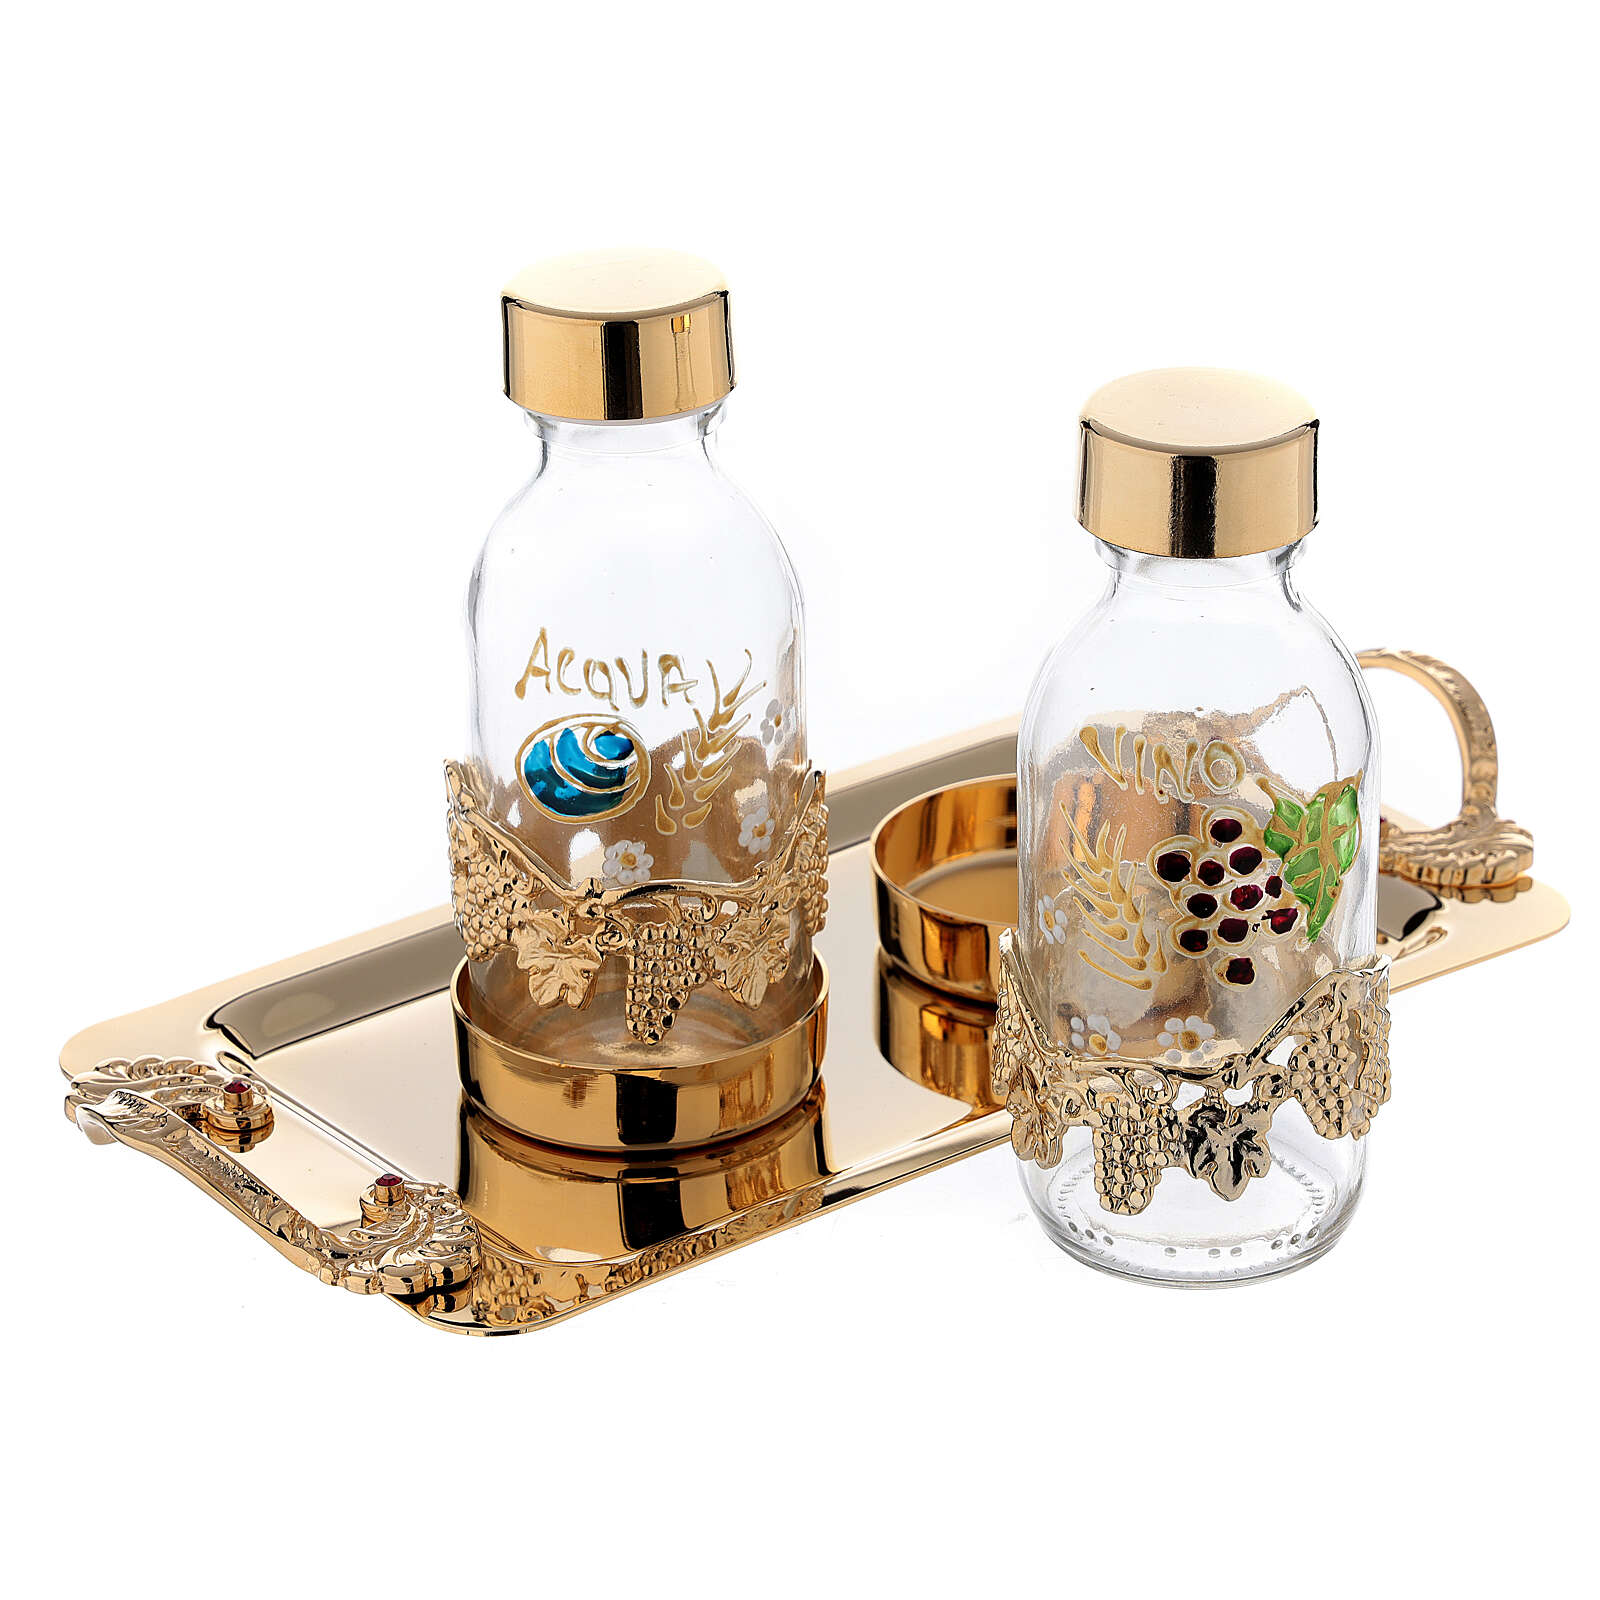 24-karat gold plated brass cruet set hand painted leaves and grapes 125 ml 4